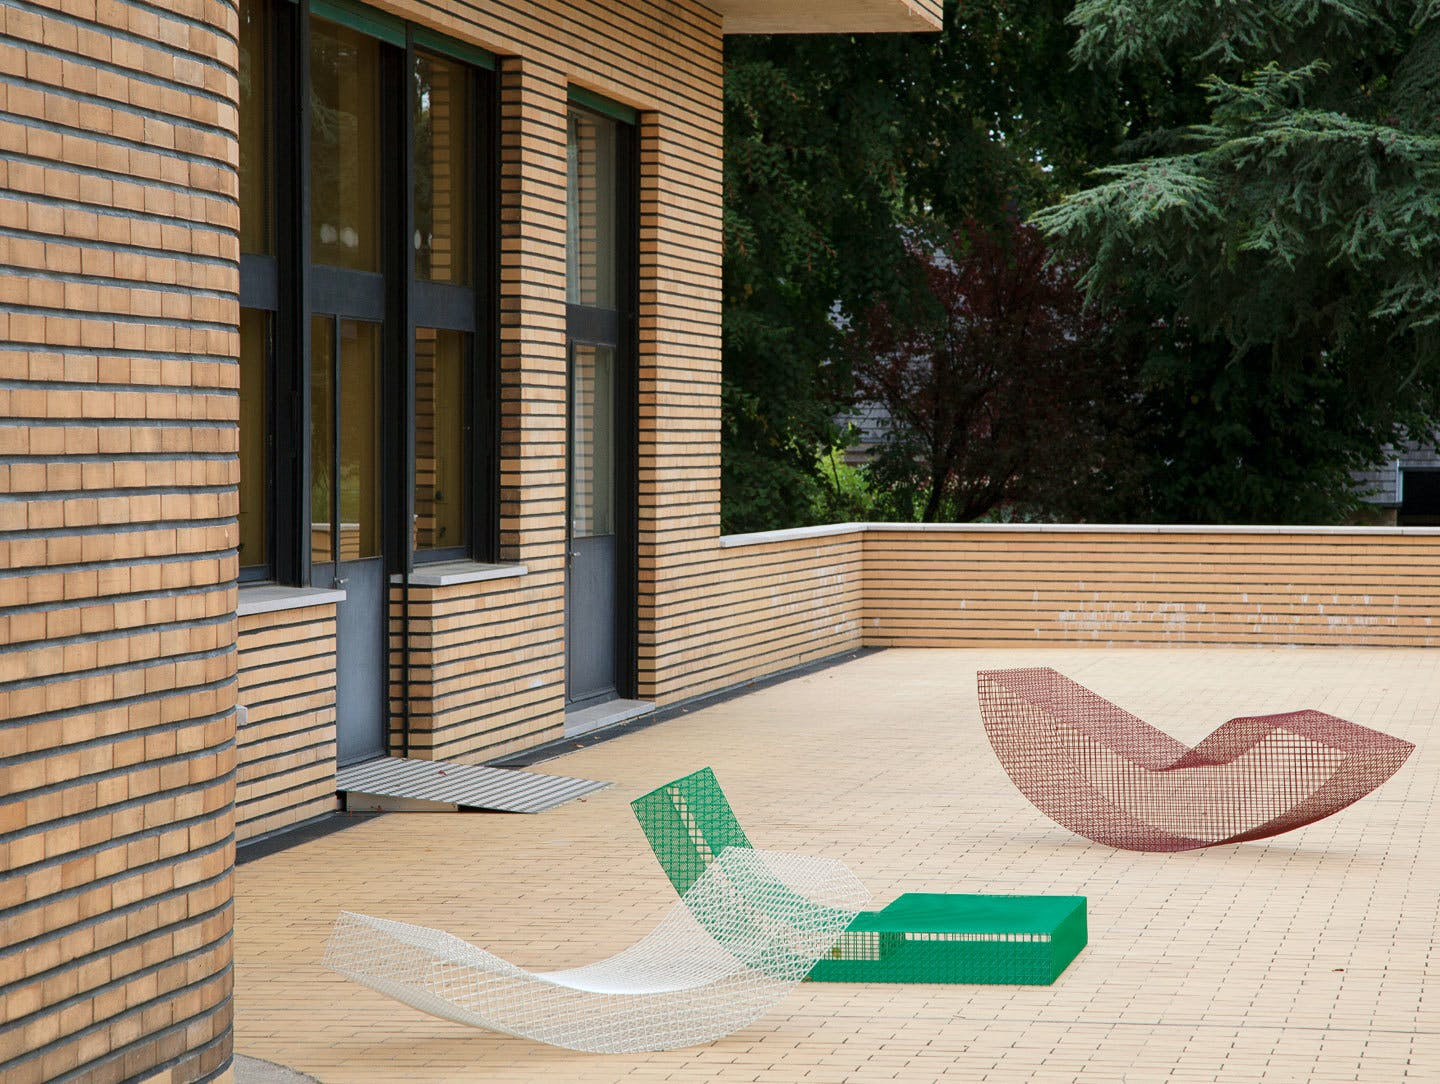 Muller van severen interview home villa cavrois 6 image